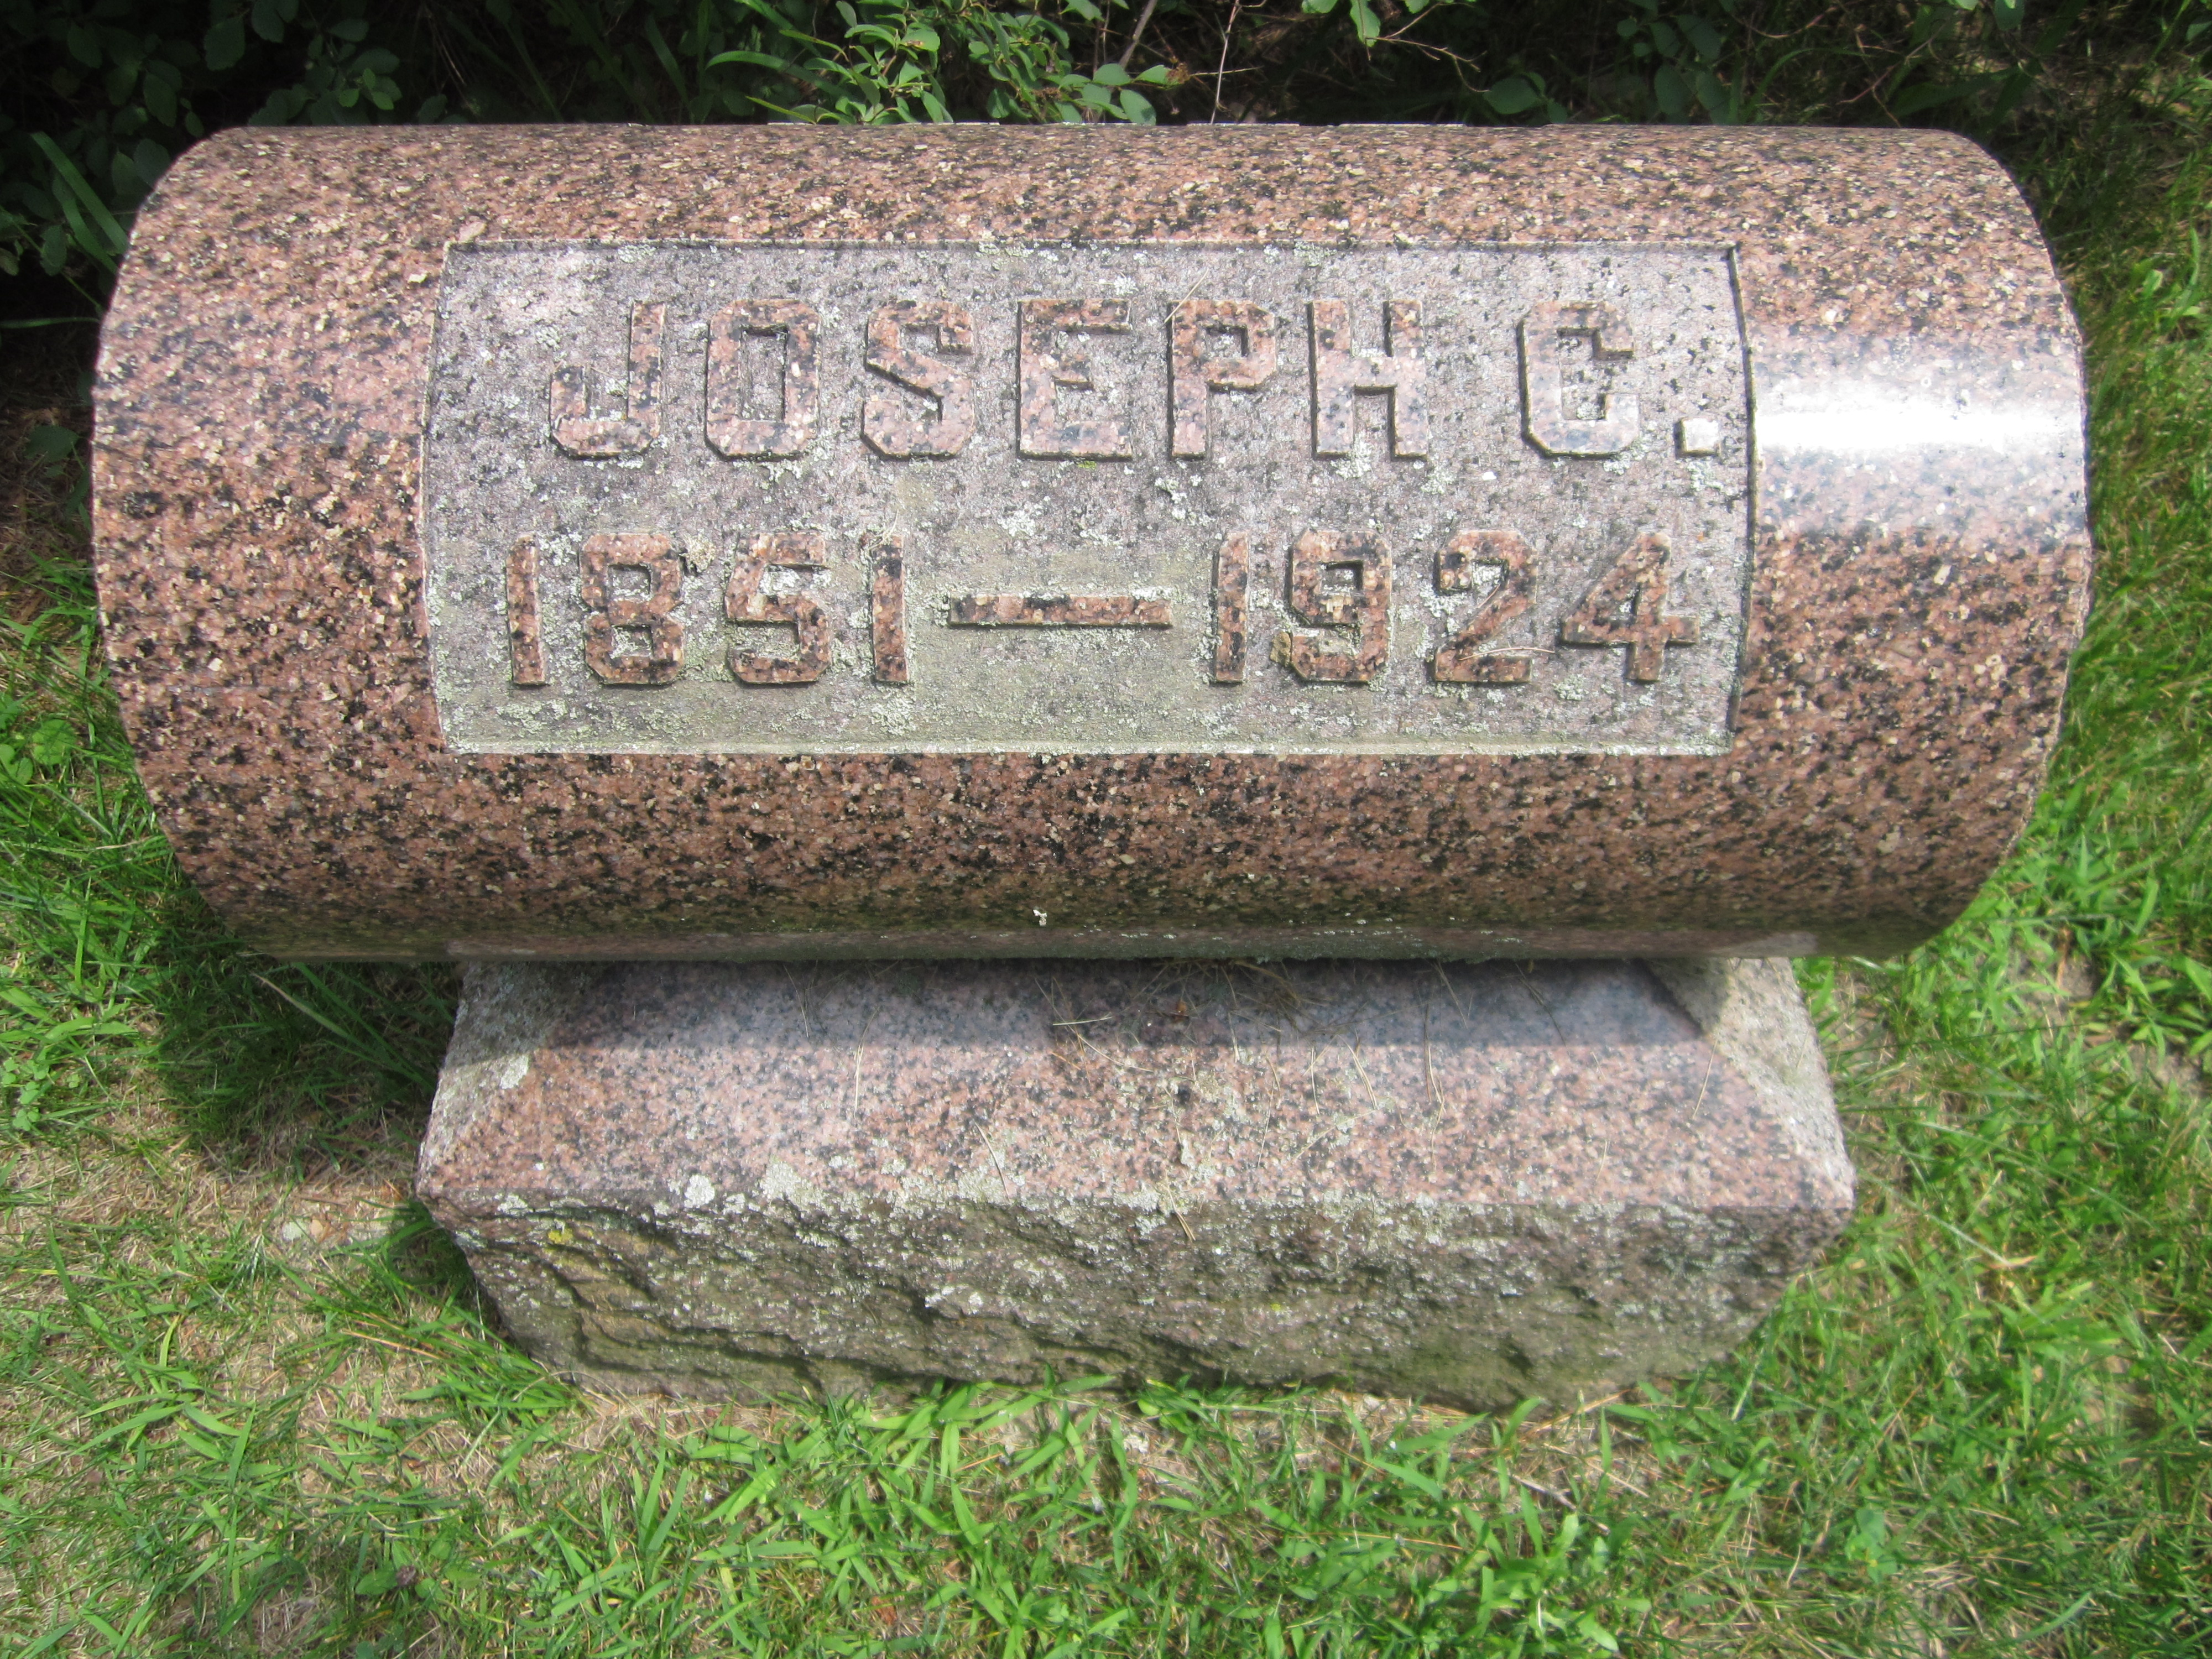 Michigan montcalm county crystal - Born 1855 In Michigan Occupation Laborer In A Silk Mill Died 1920 Buried Spencer Cemetery Crystal Montcalm County Michigan